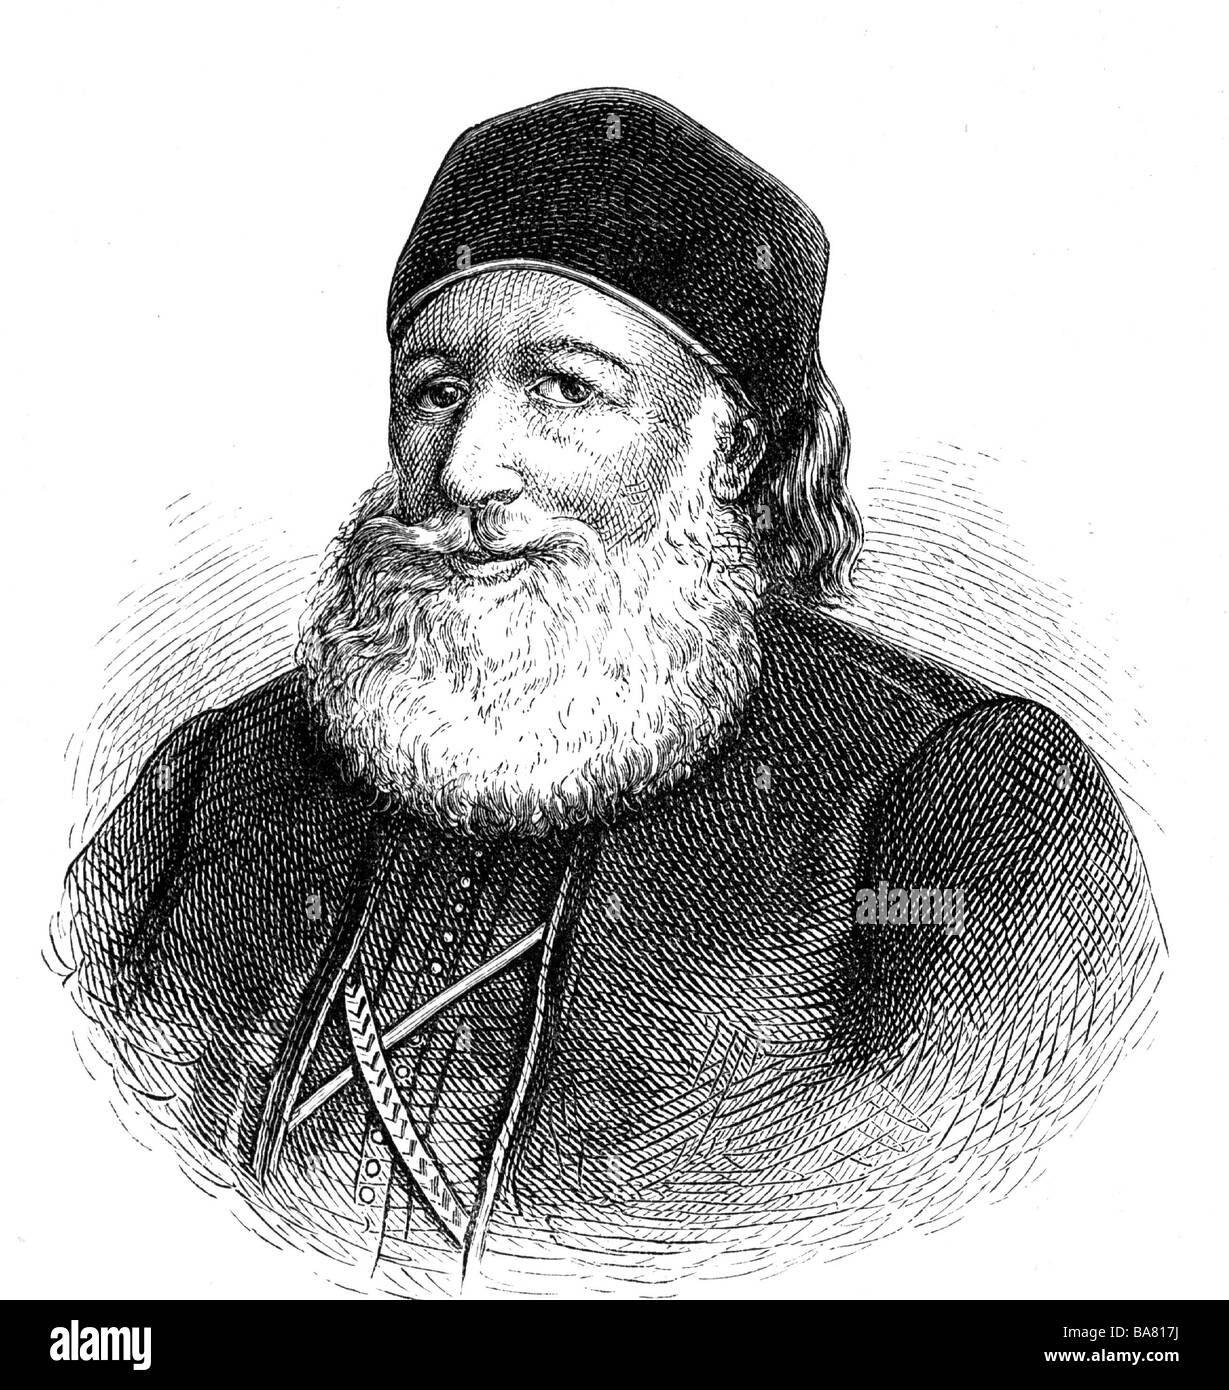 Muhammad Ali, 1769 - 12.8.1849, Khedive of Egypt 13.2.1841 - 12.8.1849, portrait, wood engraving, 19th century, - Stock Image